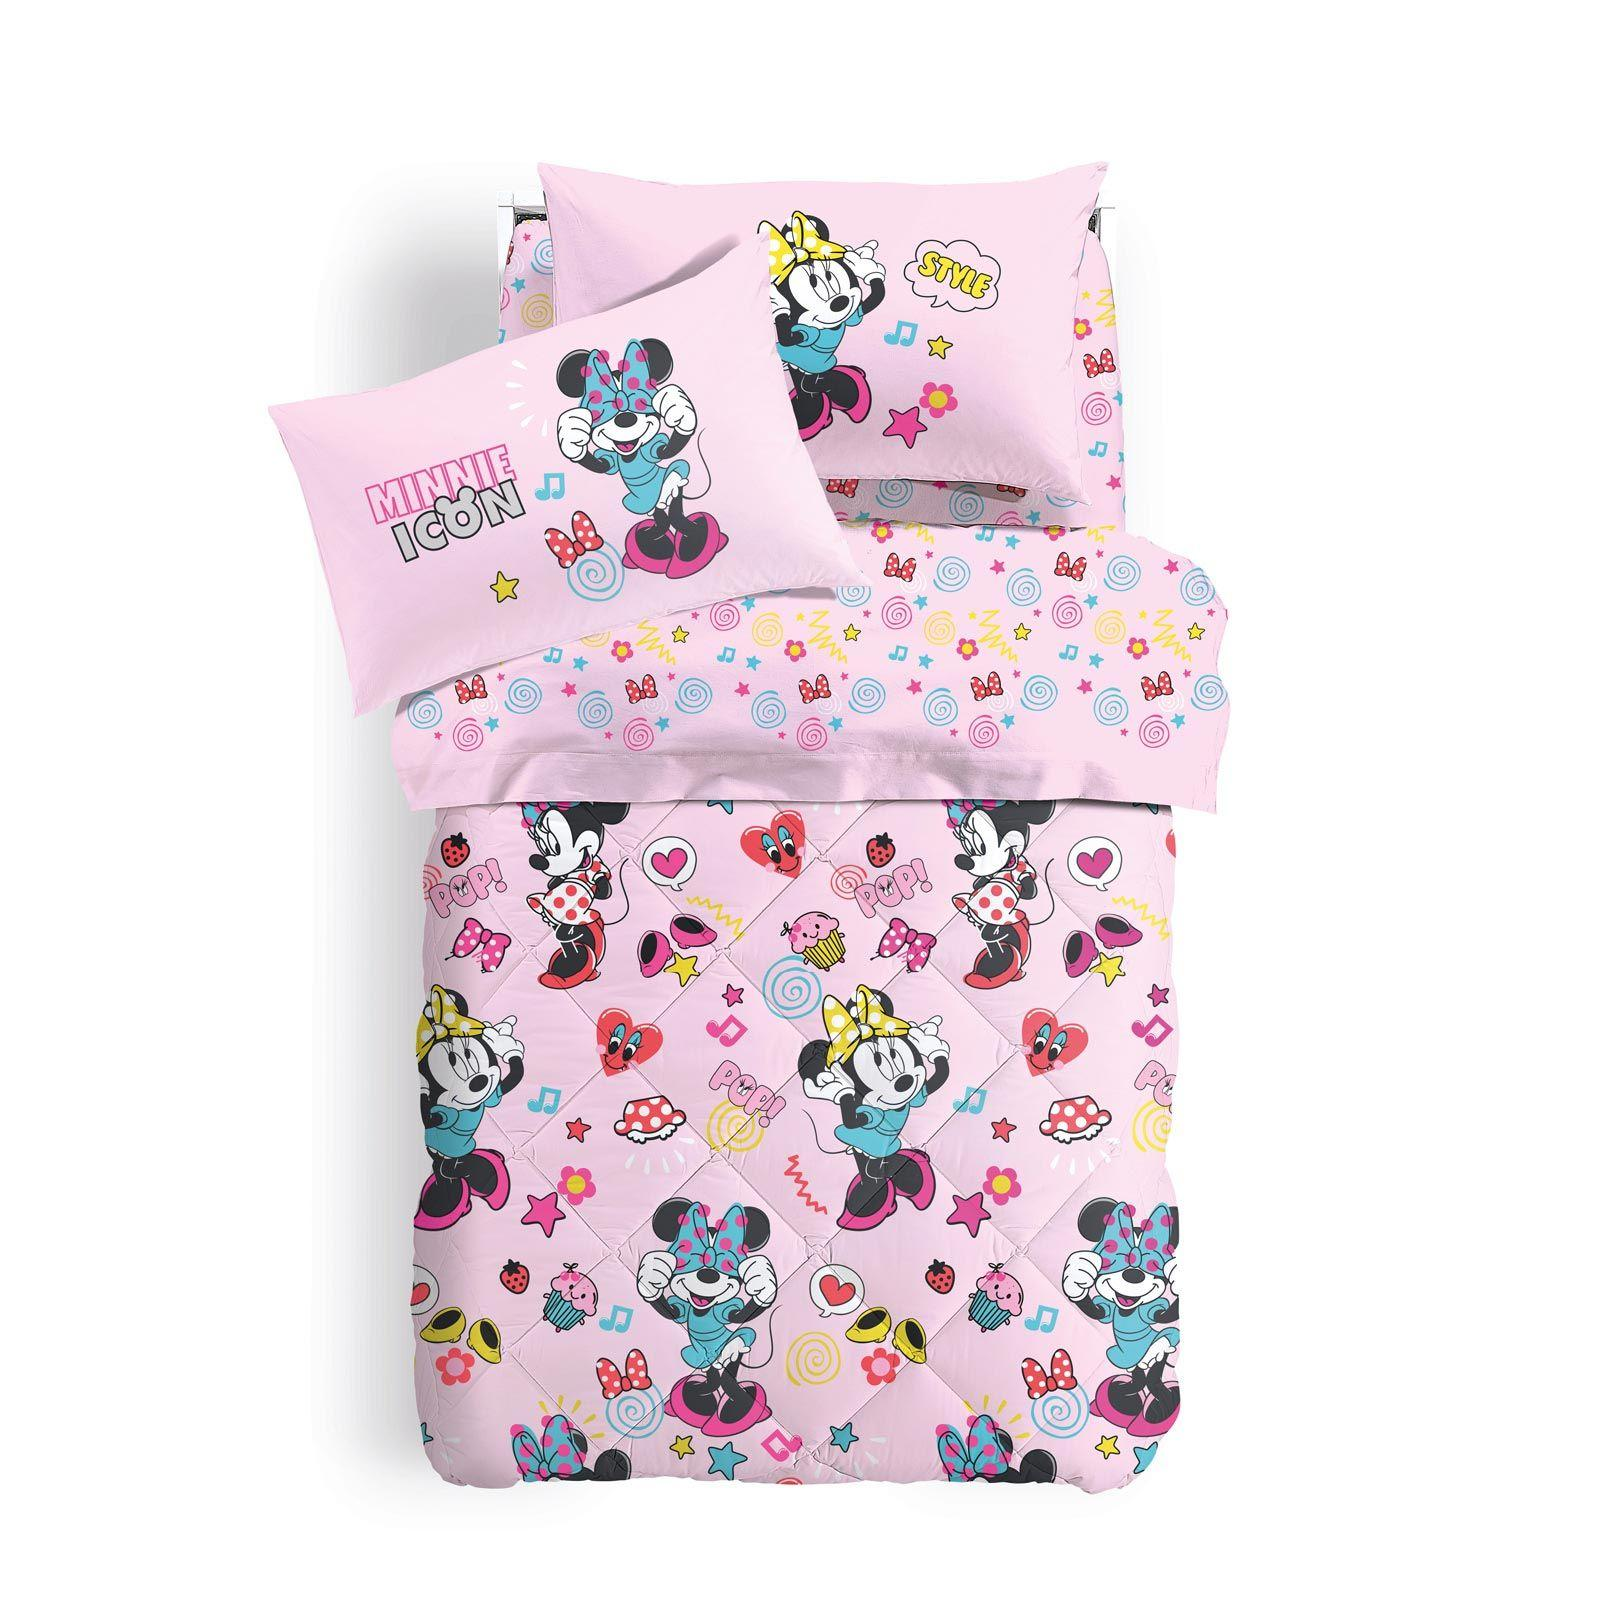 Lenzuola Letto Matrimoniale Disney.Set Lenzuola Minnie Caleffi Letto Singolo Disney Minnie Happy